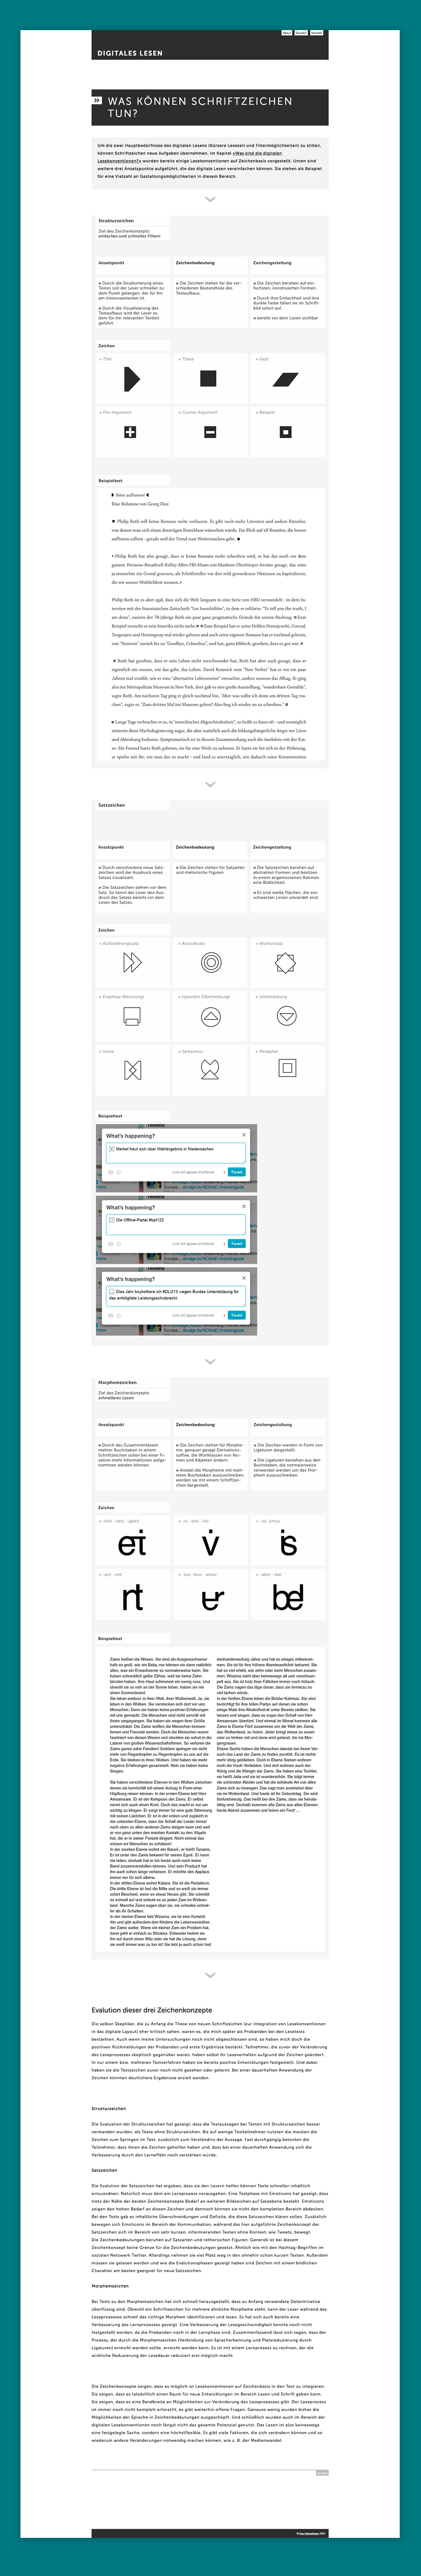 MaritaHeinzelmann_UX_UI_Design_Digitales_Lesen_Digital_Reading3